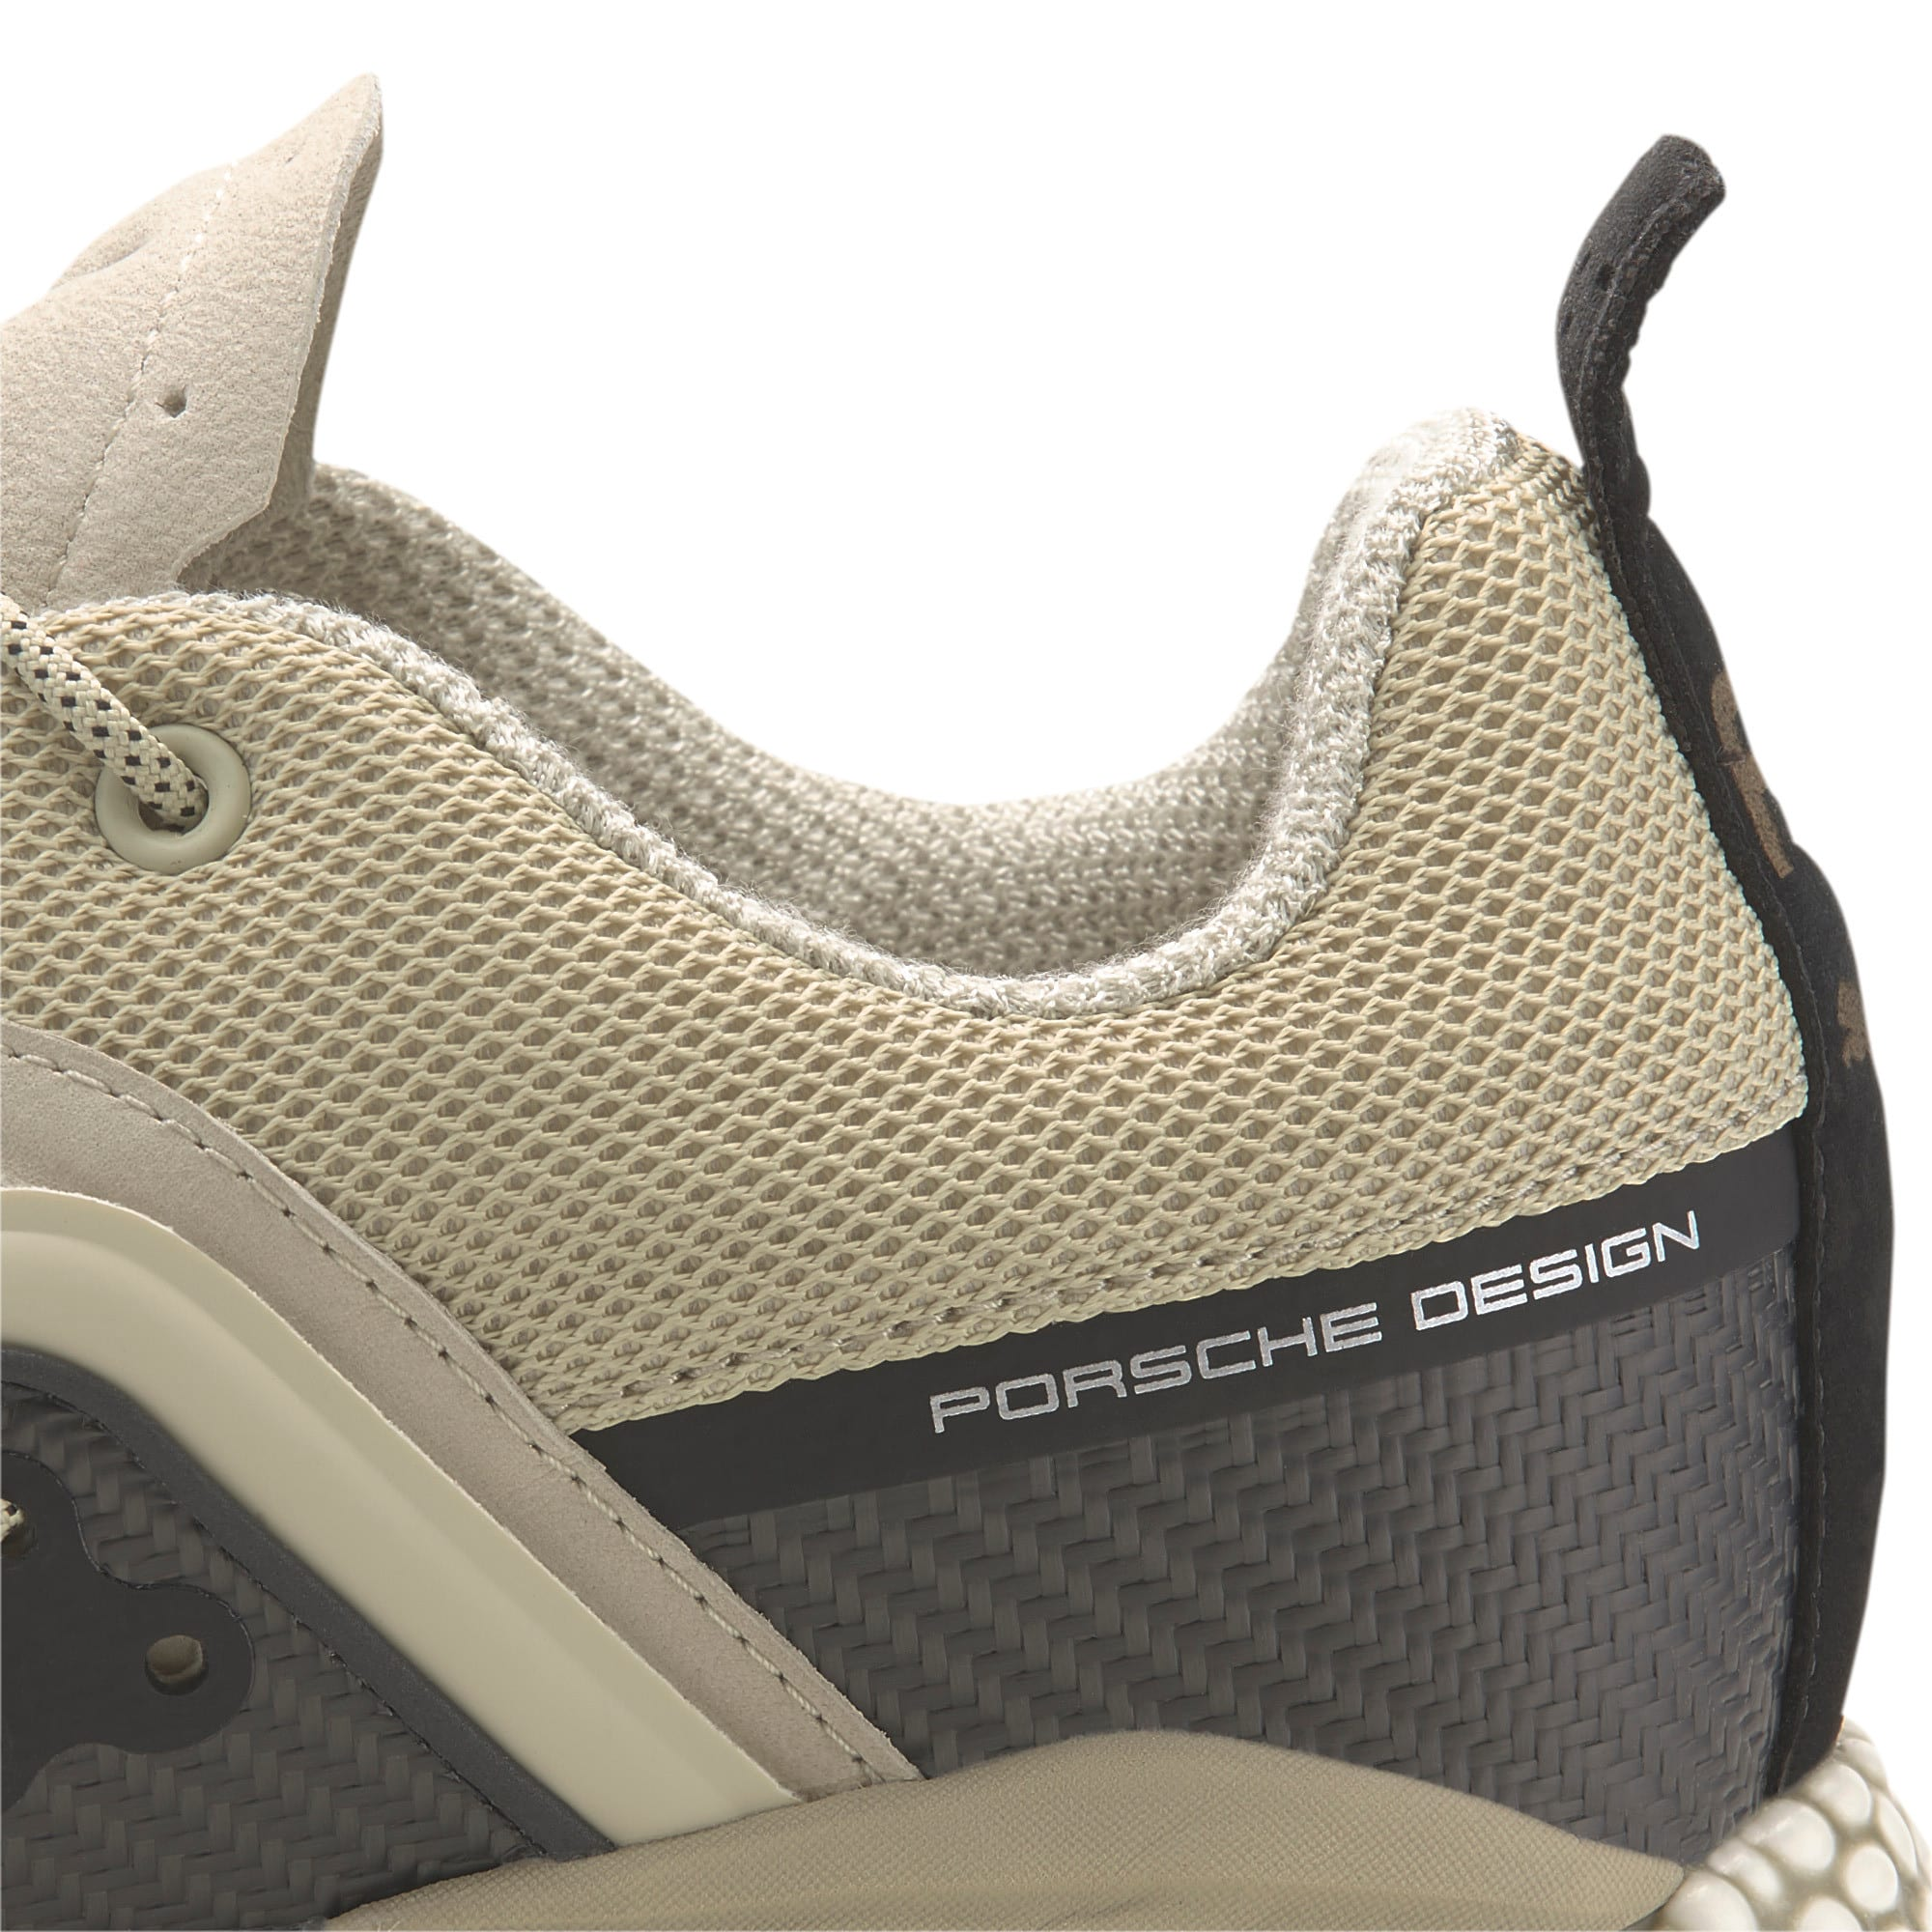 Thumbnail 8 of Porsche Design HYBRID Runner Men's Trainers, Overcast-Jet Black, medium